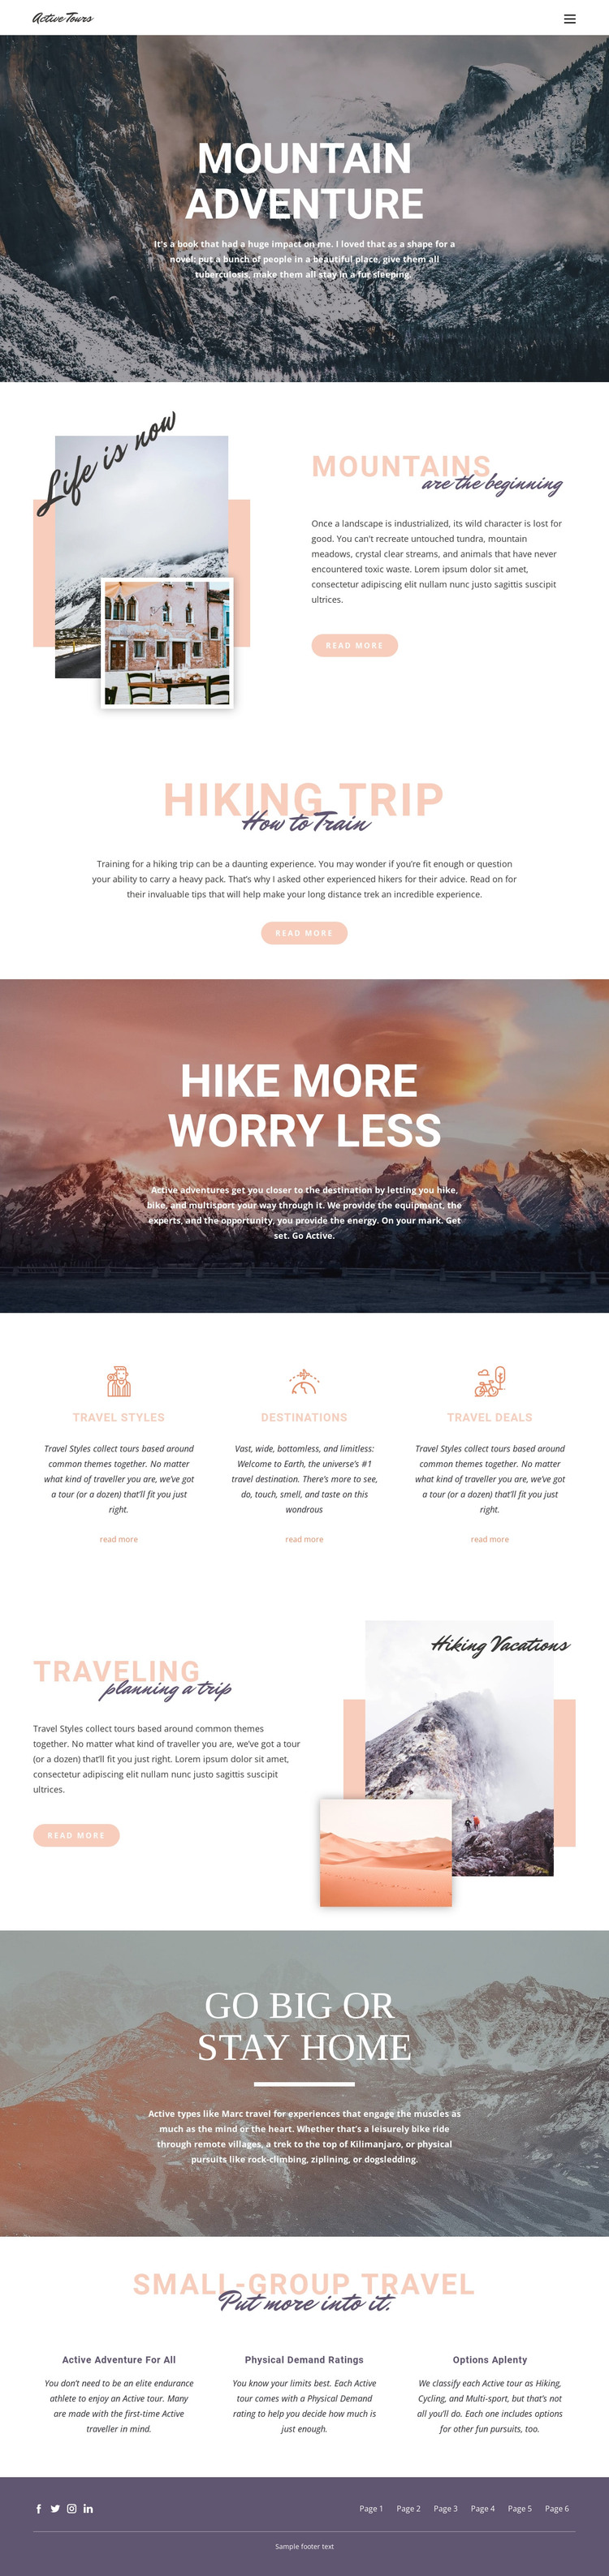 Guided backpacking trips HTML Template